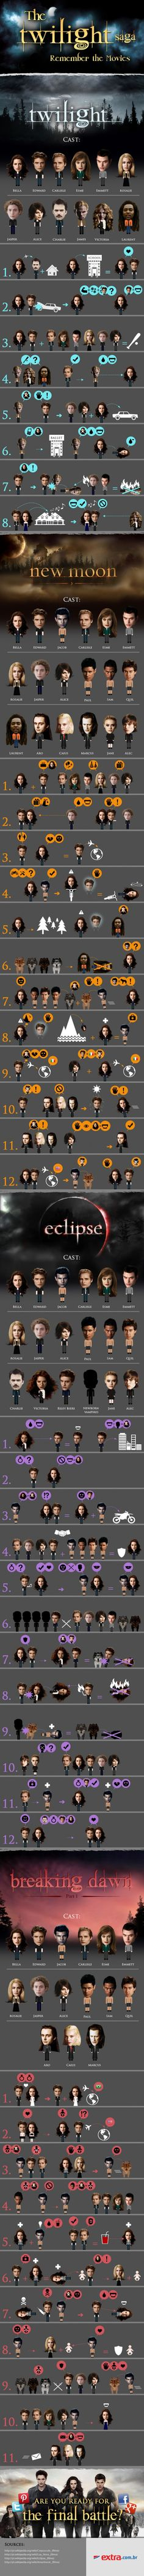 The Twilight Saga Infographic // this is awesome because they don't bite other people.